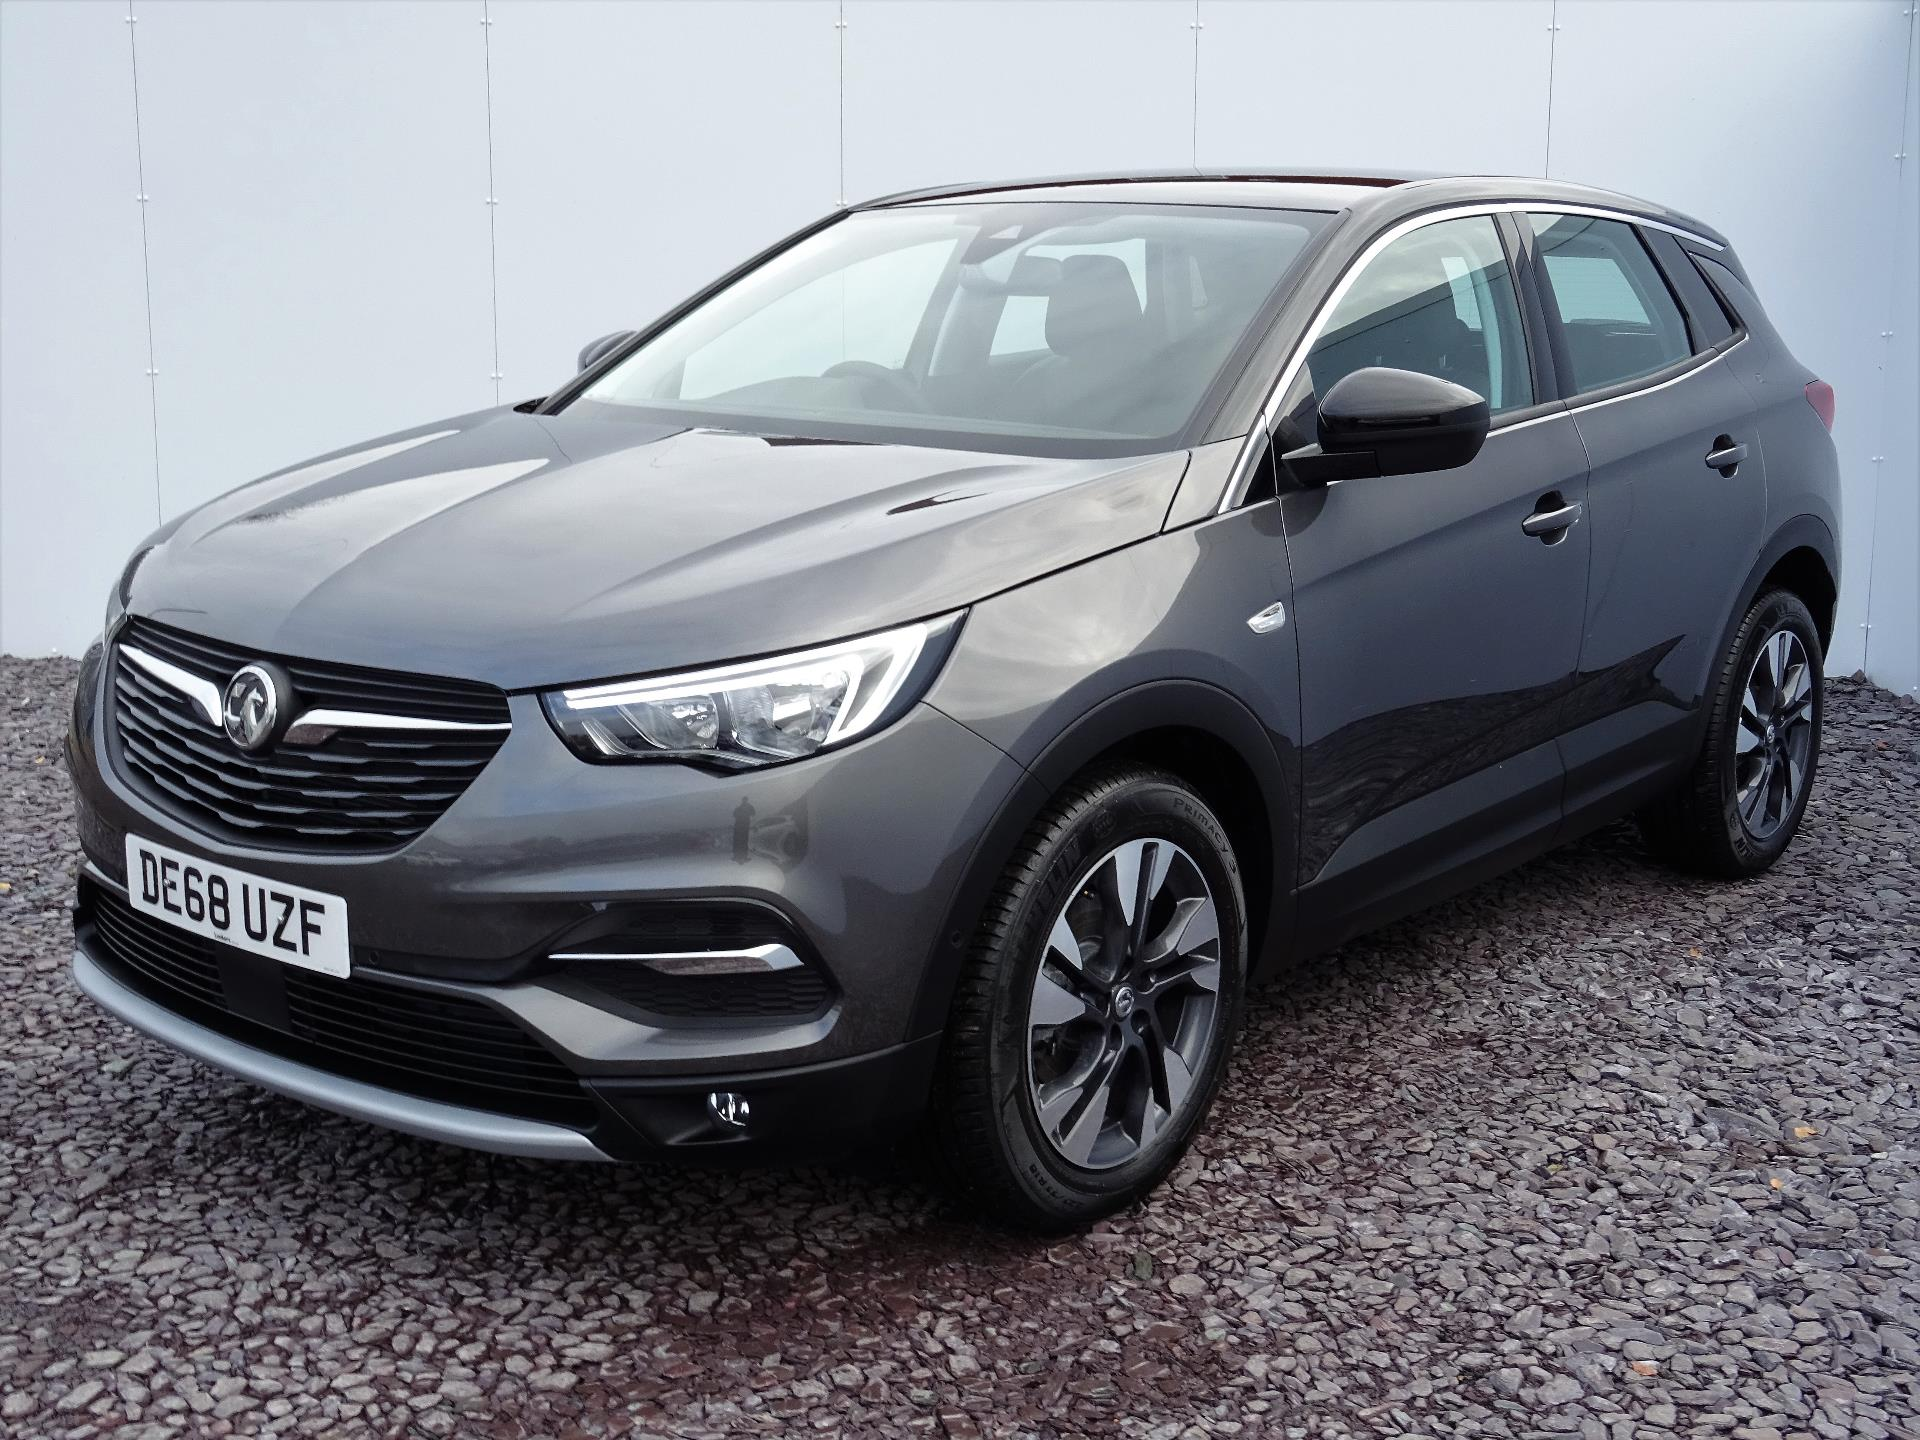 Large photo 3 for 2018/68 VAUXHALL GRANDLAND X/68 VAUXHALL GRANDLAND X 1.2T SPORT NAV 5DR**JUST 380 MILES**IMMEDIATE DELIVERY**(VXL)